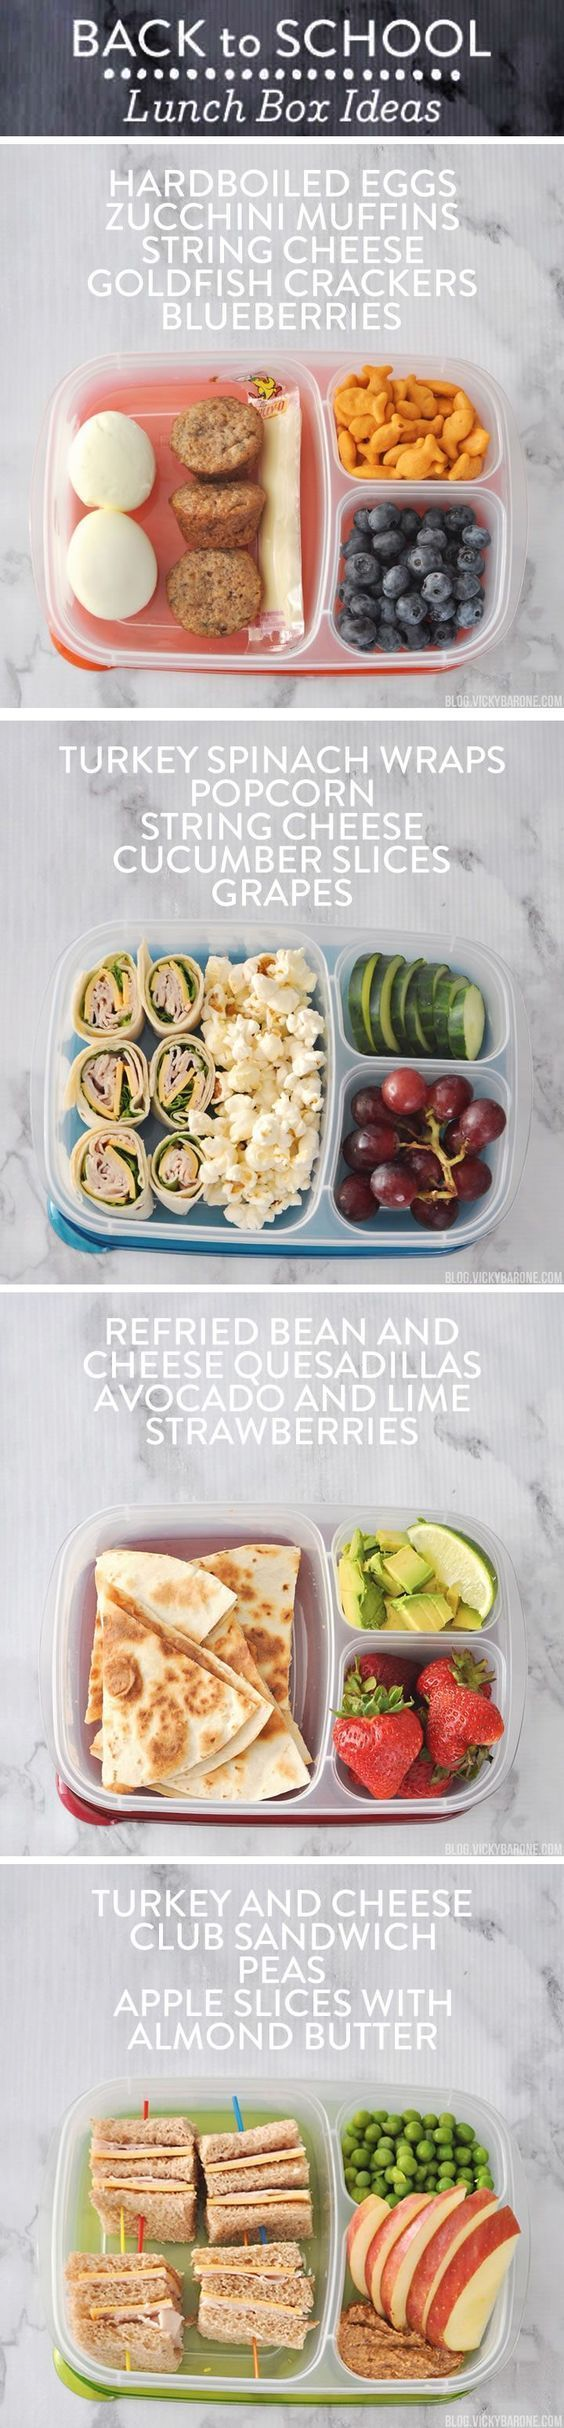 Yummy packed lunch ideas for when you're stumped on what to send your kiddo to school with. Packed in @easylunchboxes, these lunch combinations have fruits, veggies, and protein to give your little ones the nutrition and energy to tackle the day without sacrificing taste. #easylunchboxes